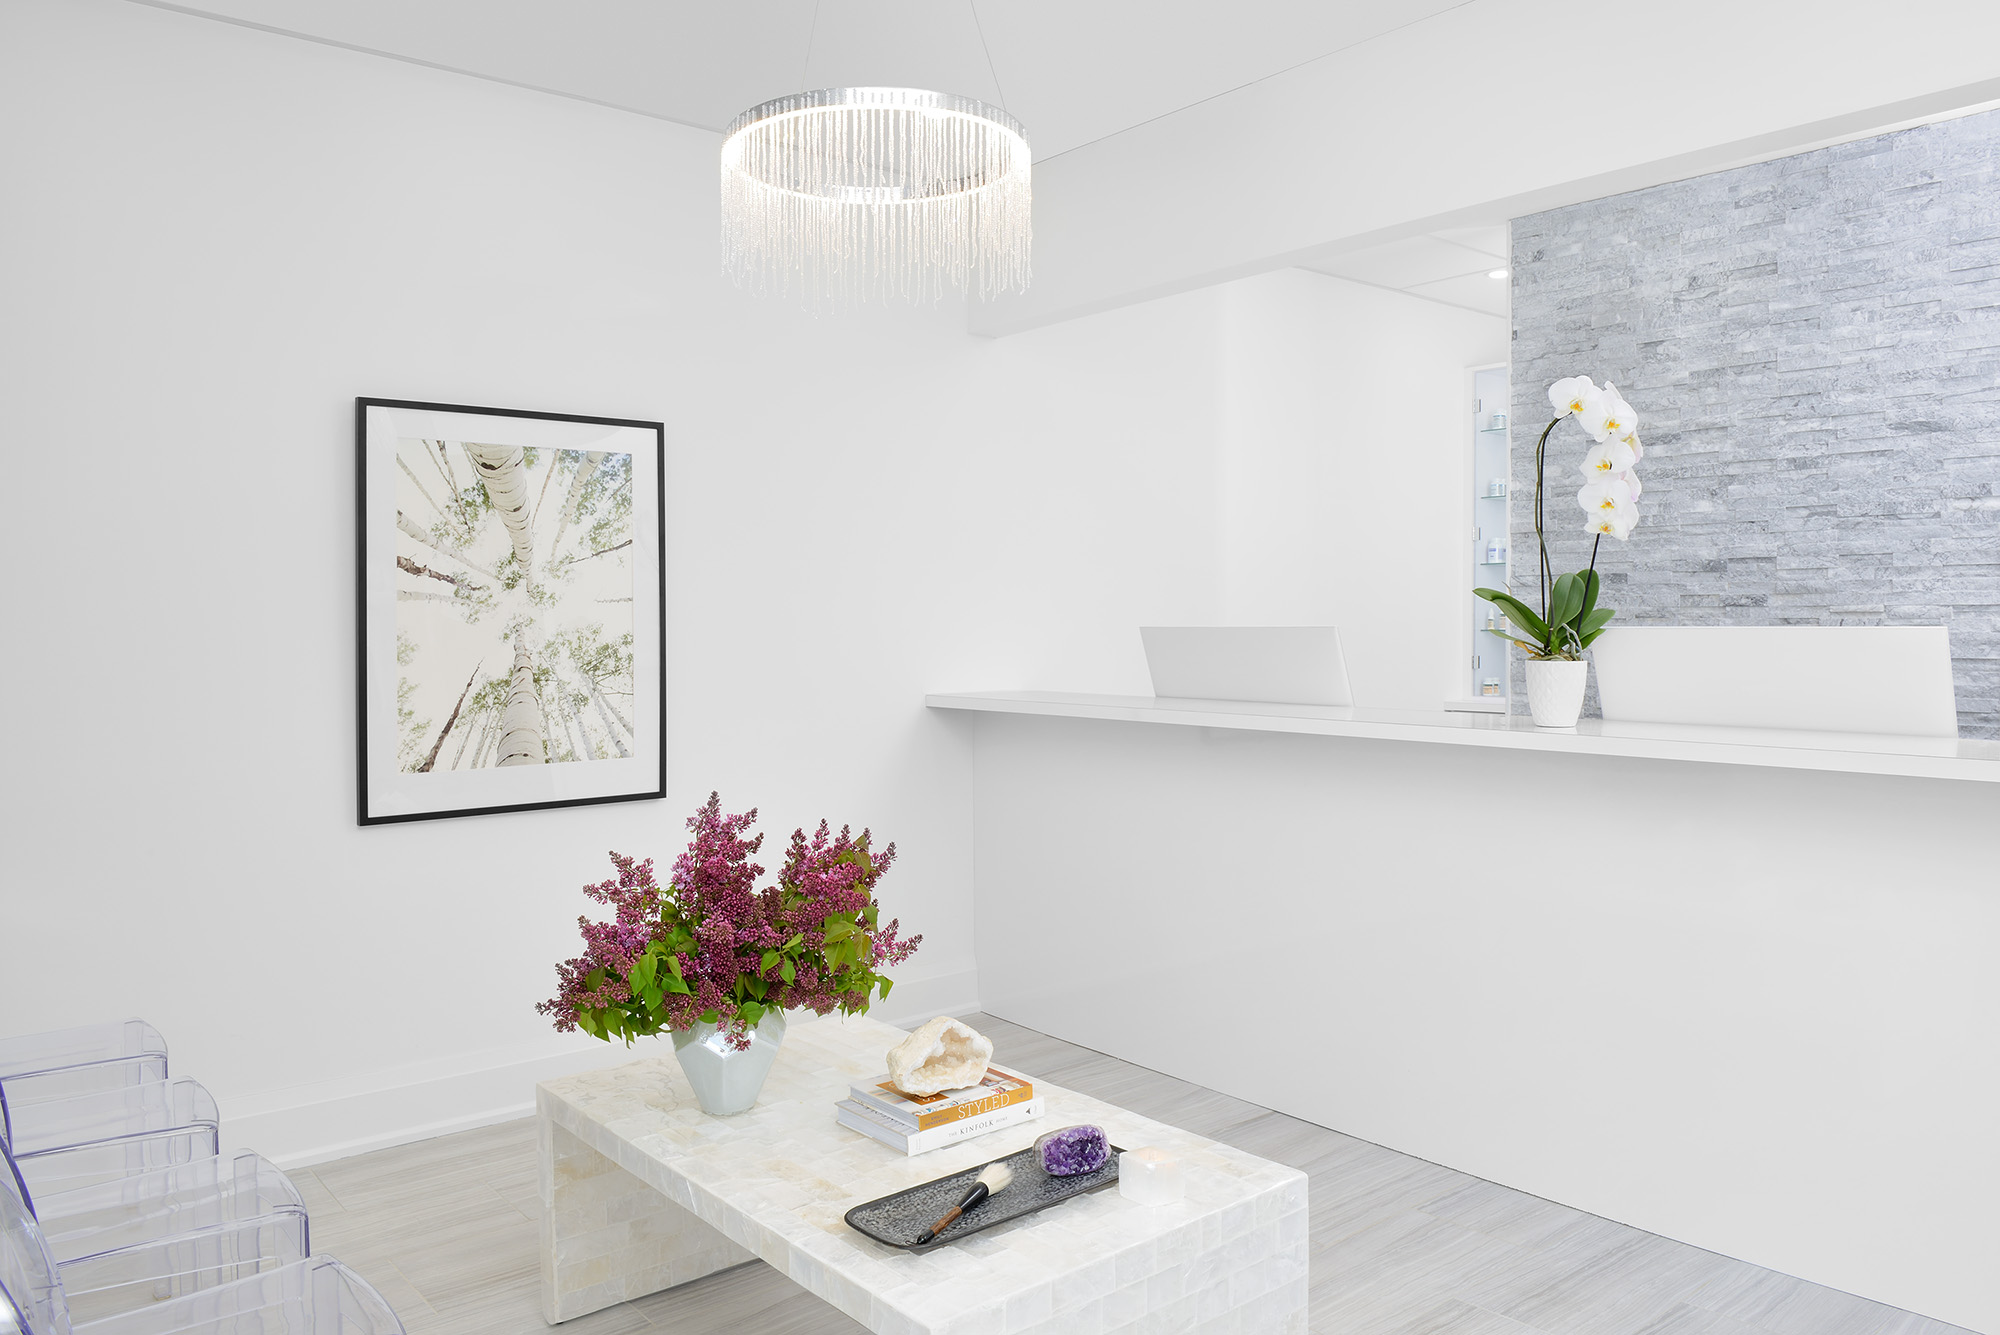 docere-reception-desk-rove-bernhardt-minted-framed-and-matted-erthcoverings-winners-the-curated-house